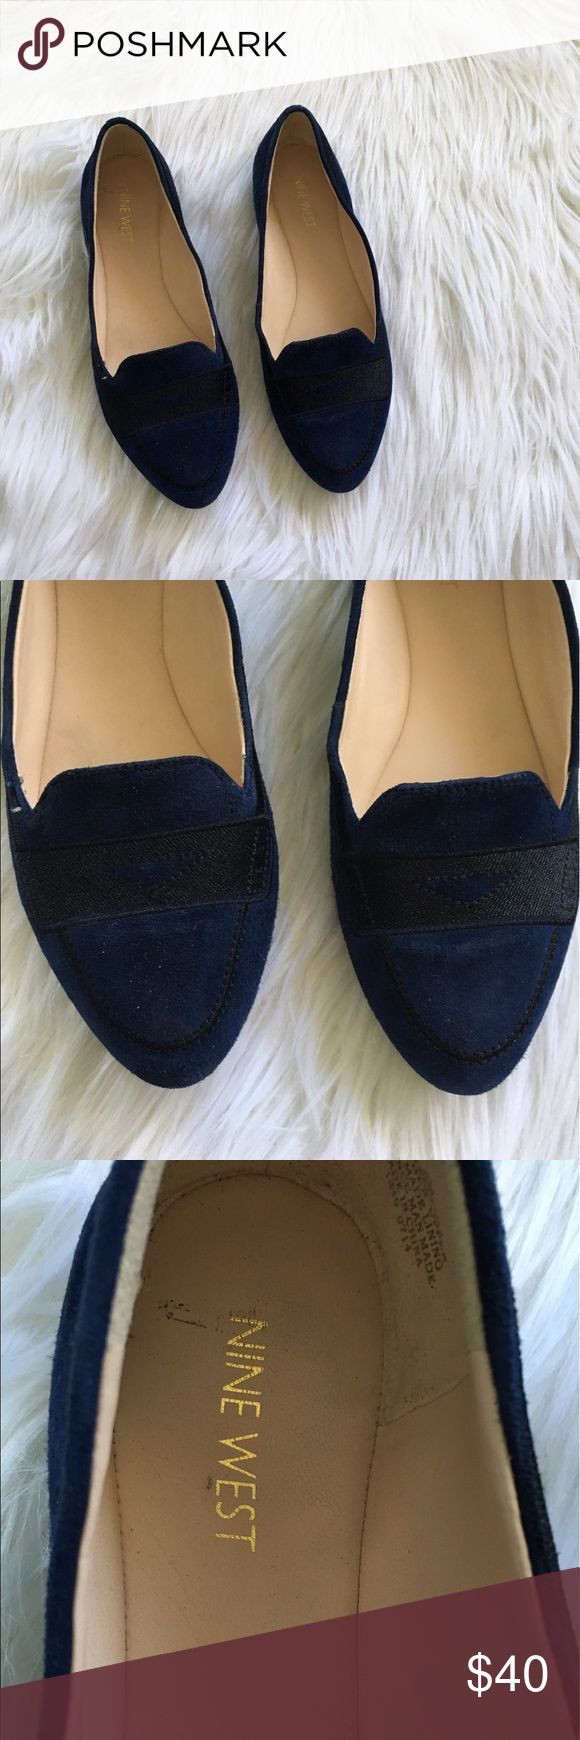 Nine West Blue and Black Suede Loafers Excellent condition with no flaws and tons of life left! NO TRADES PLEASE Nine West Shoes Flats & Loafers